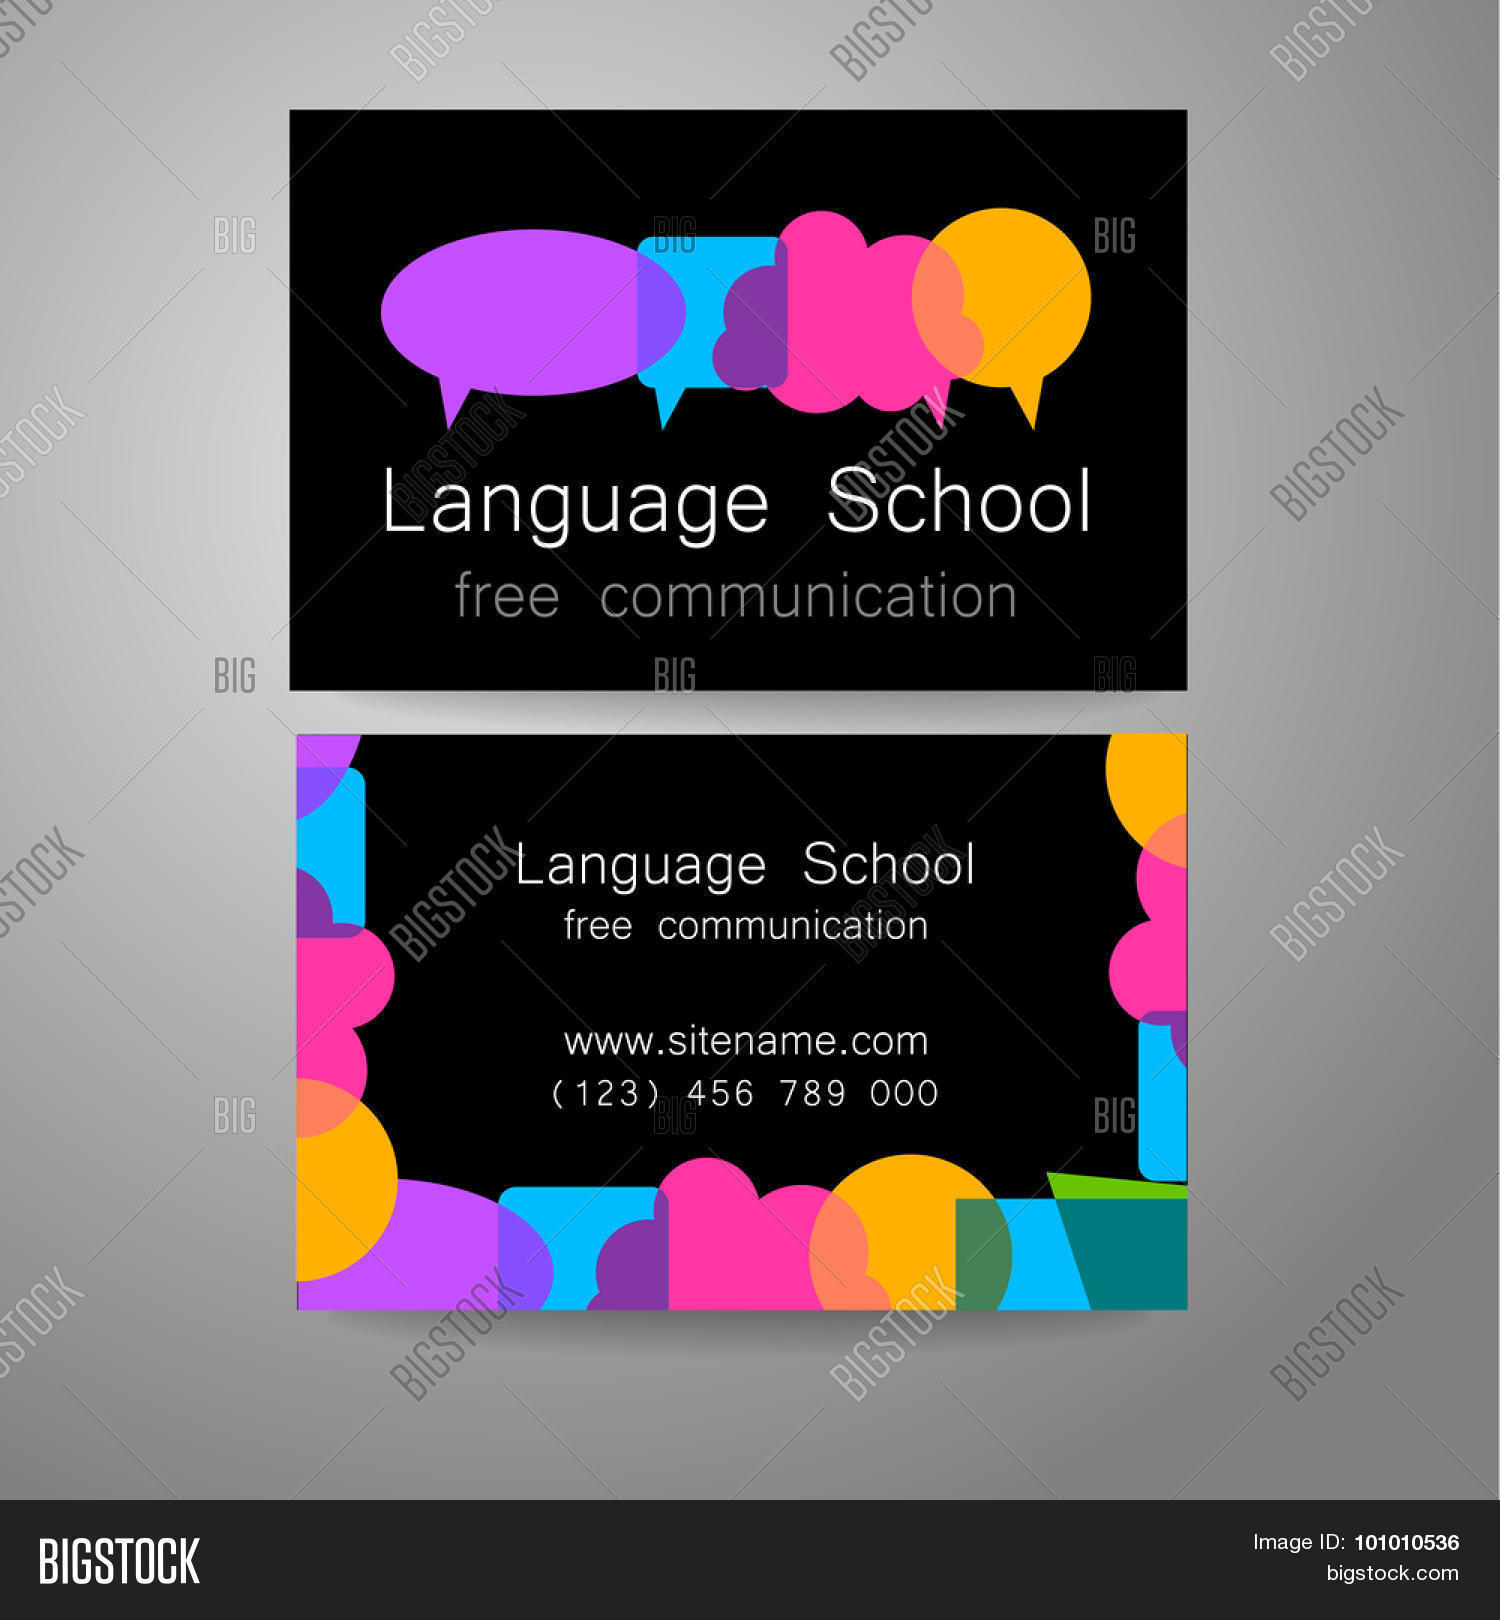 Language School Logo   A Design Template. The Idea Of The Design Mark For  The  Club Card Design